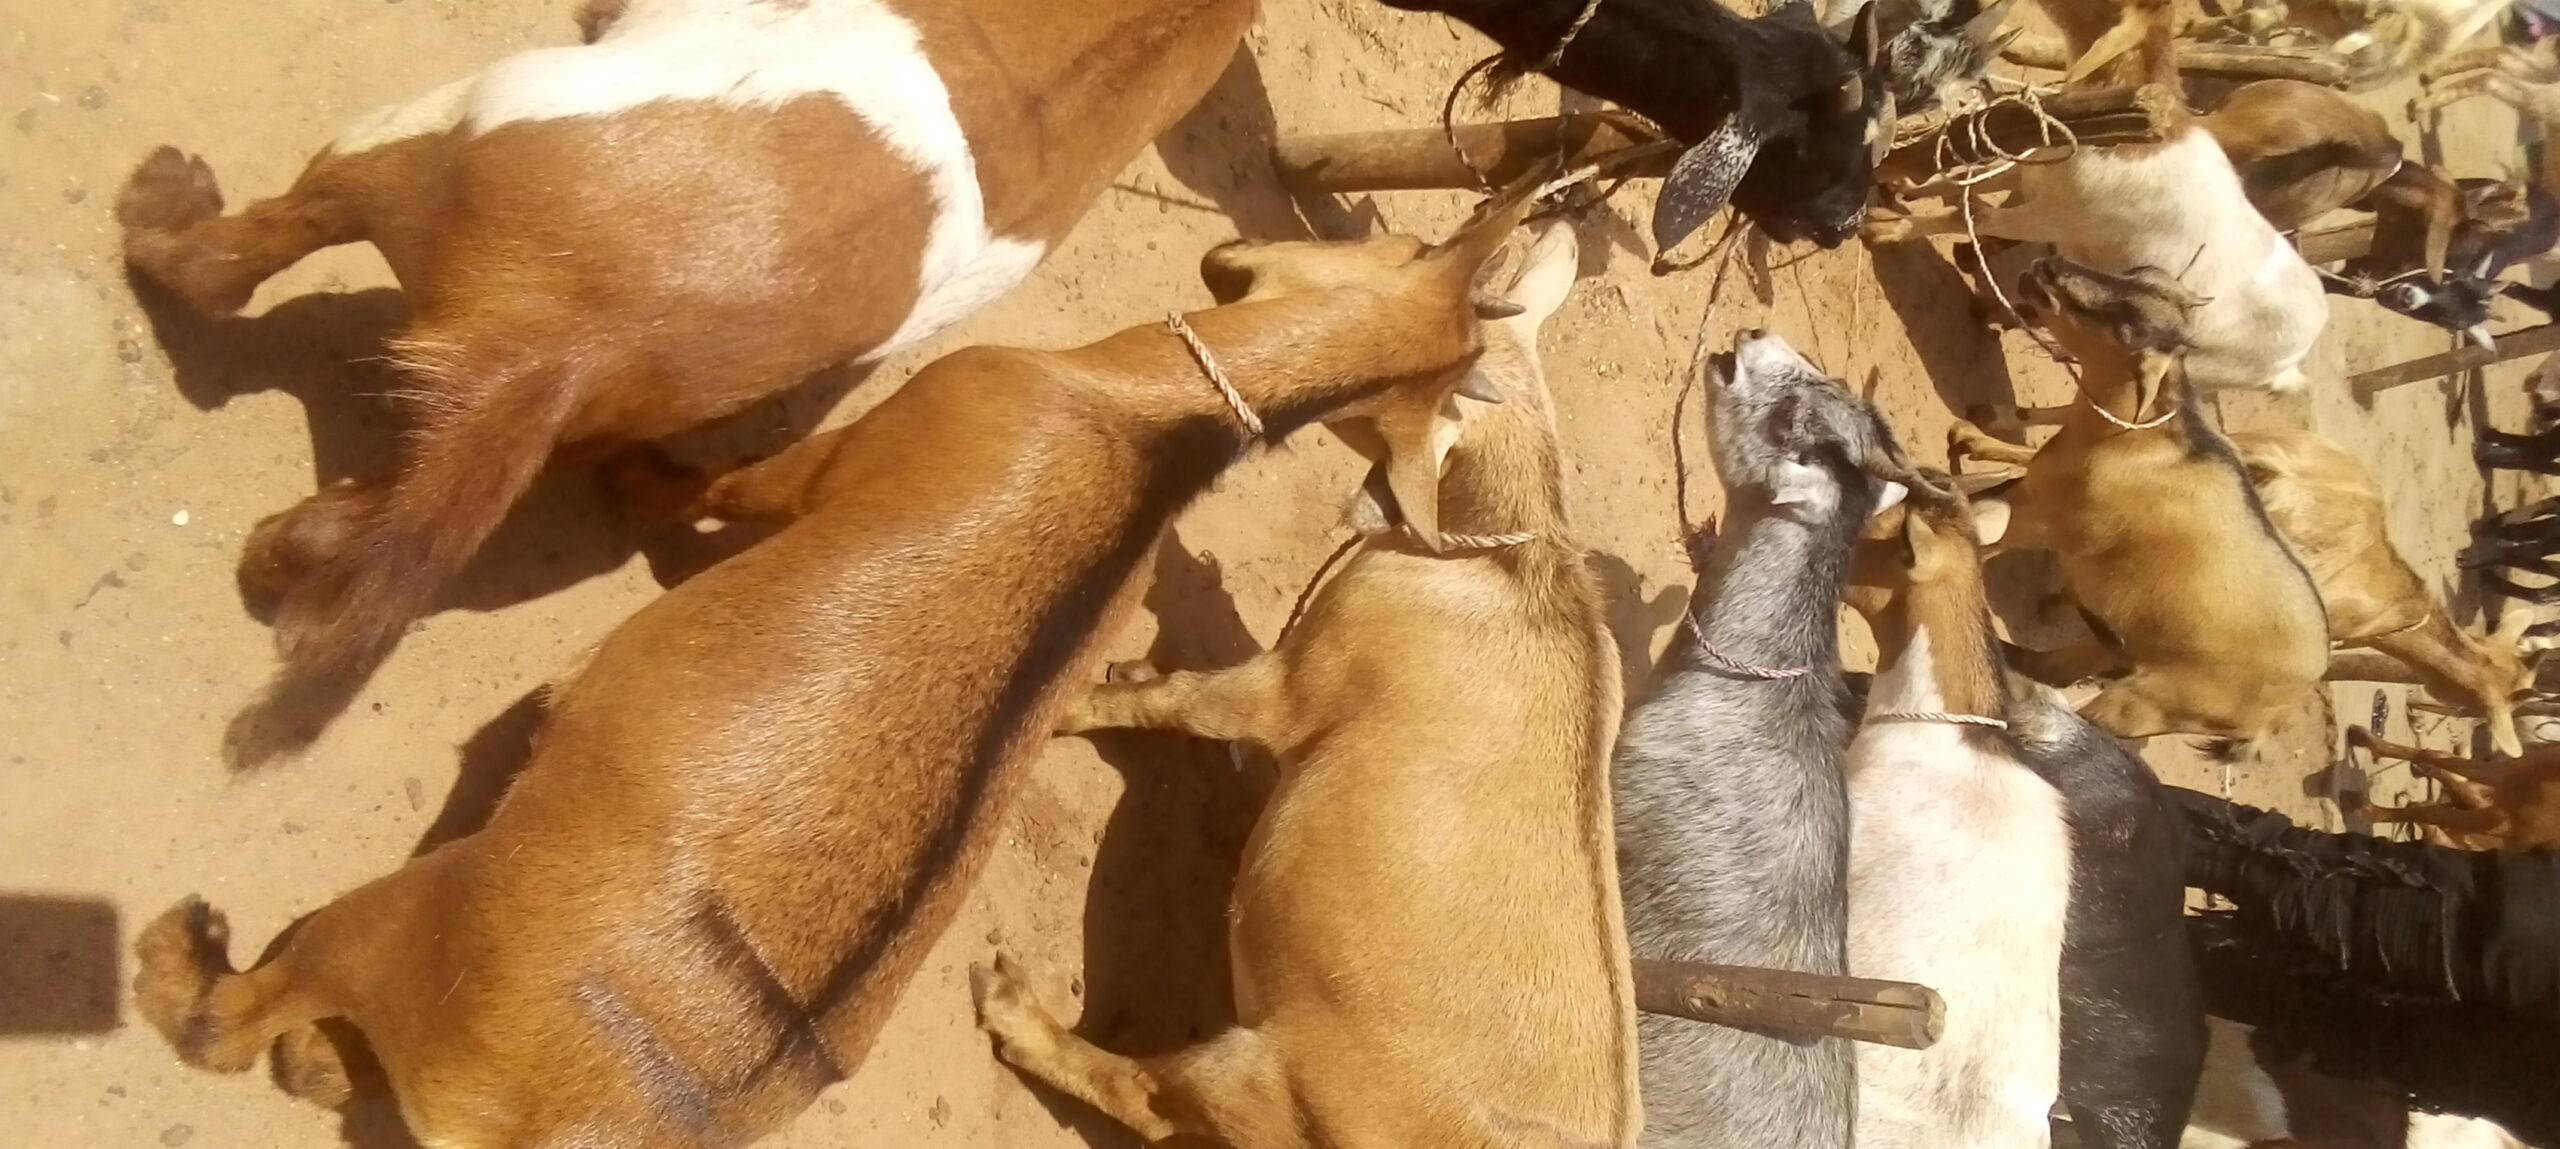 Prices of Goats in Nigeria